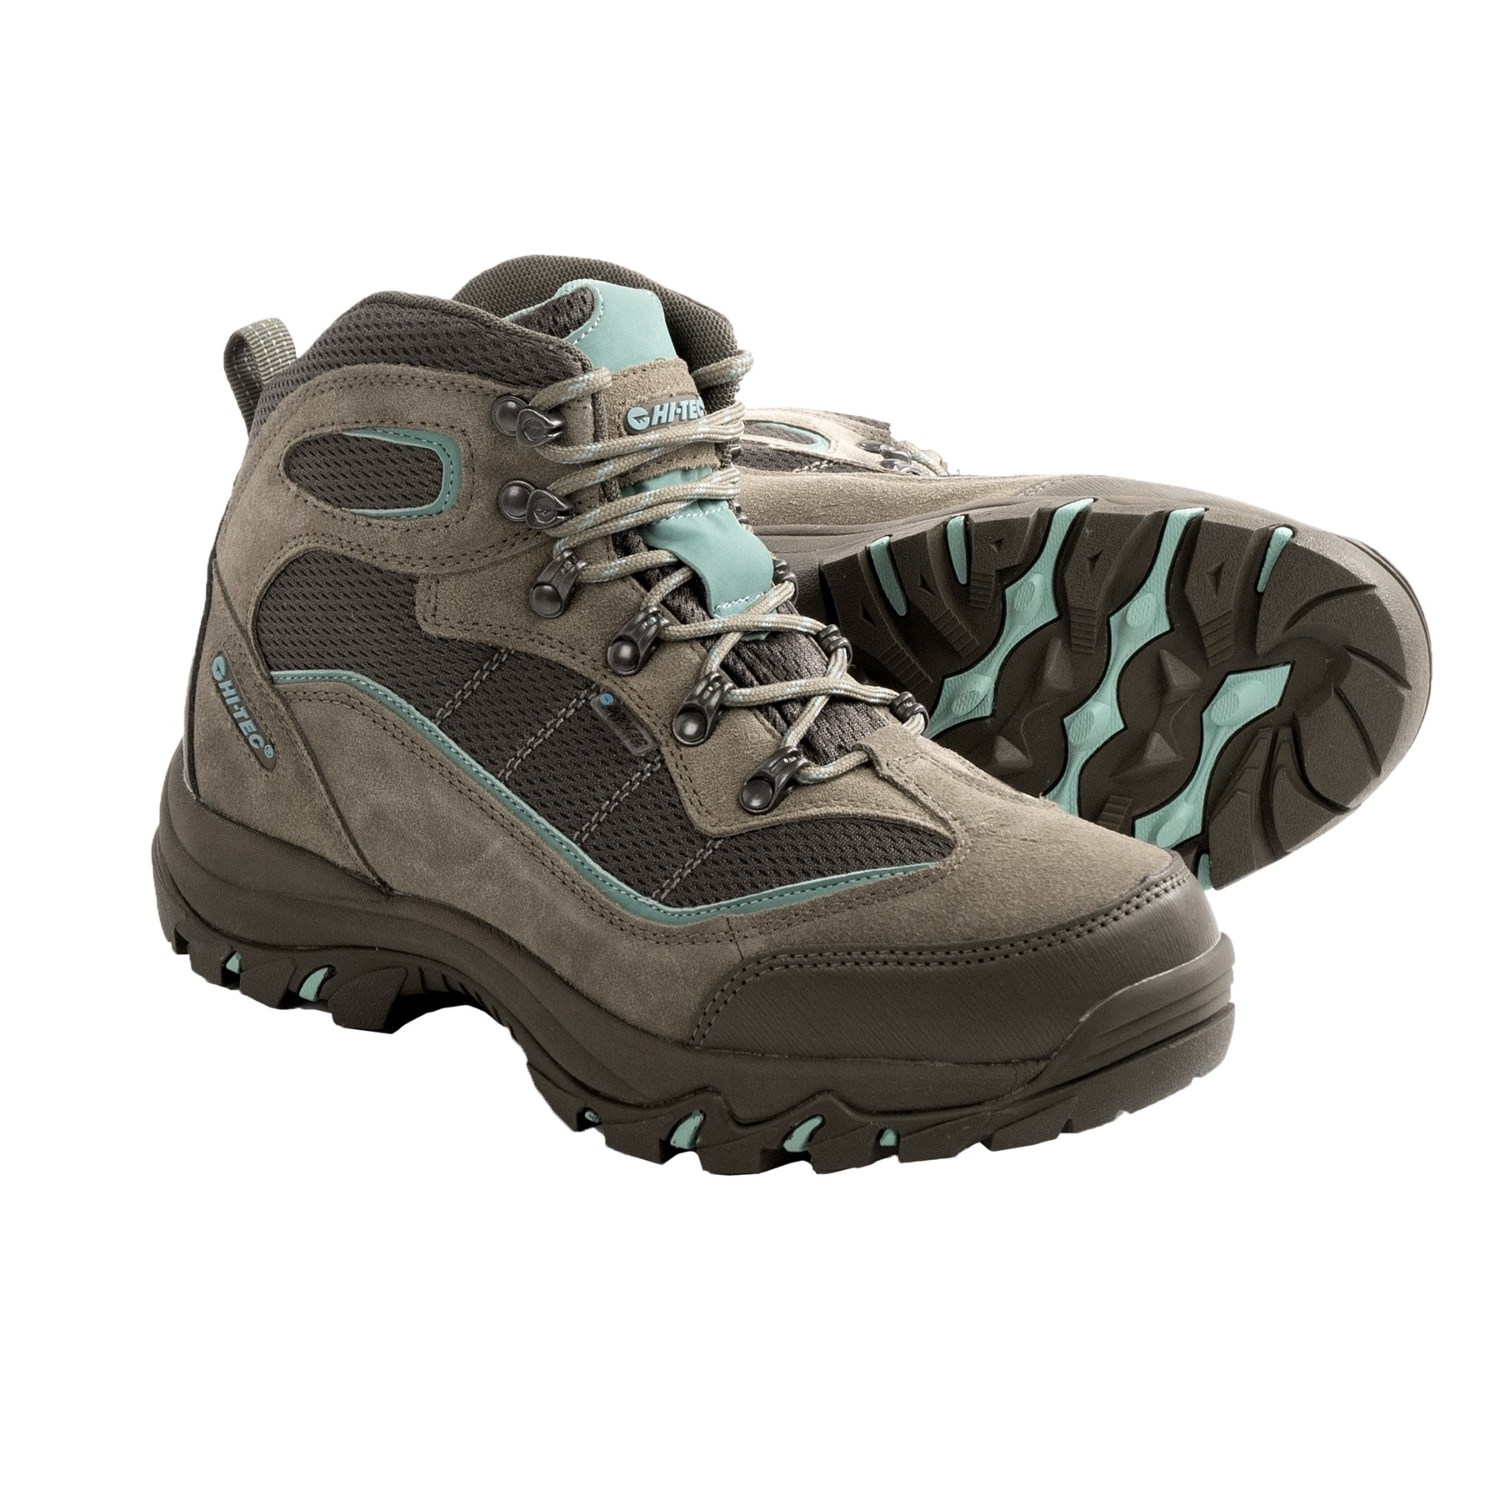 Popular Keen Women39s Bryce Mid WP Hiking Boot Product Shot